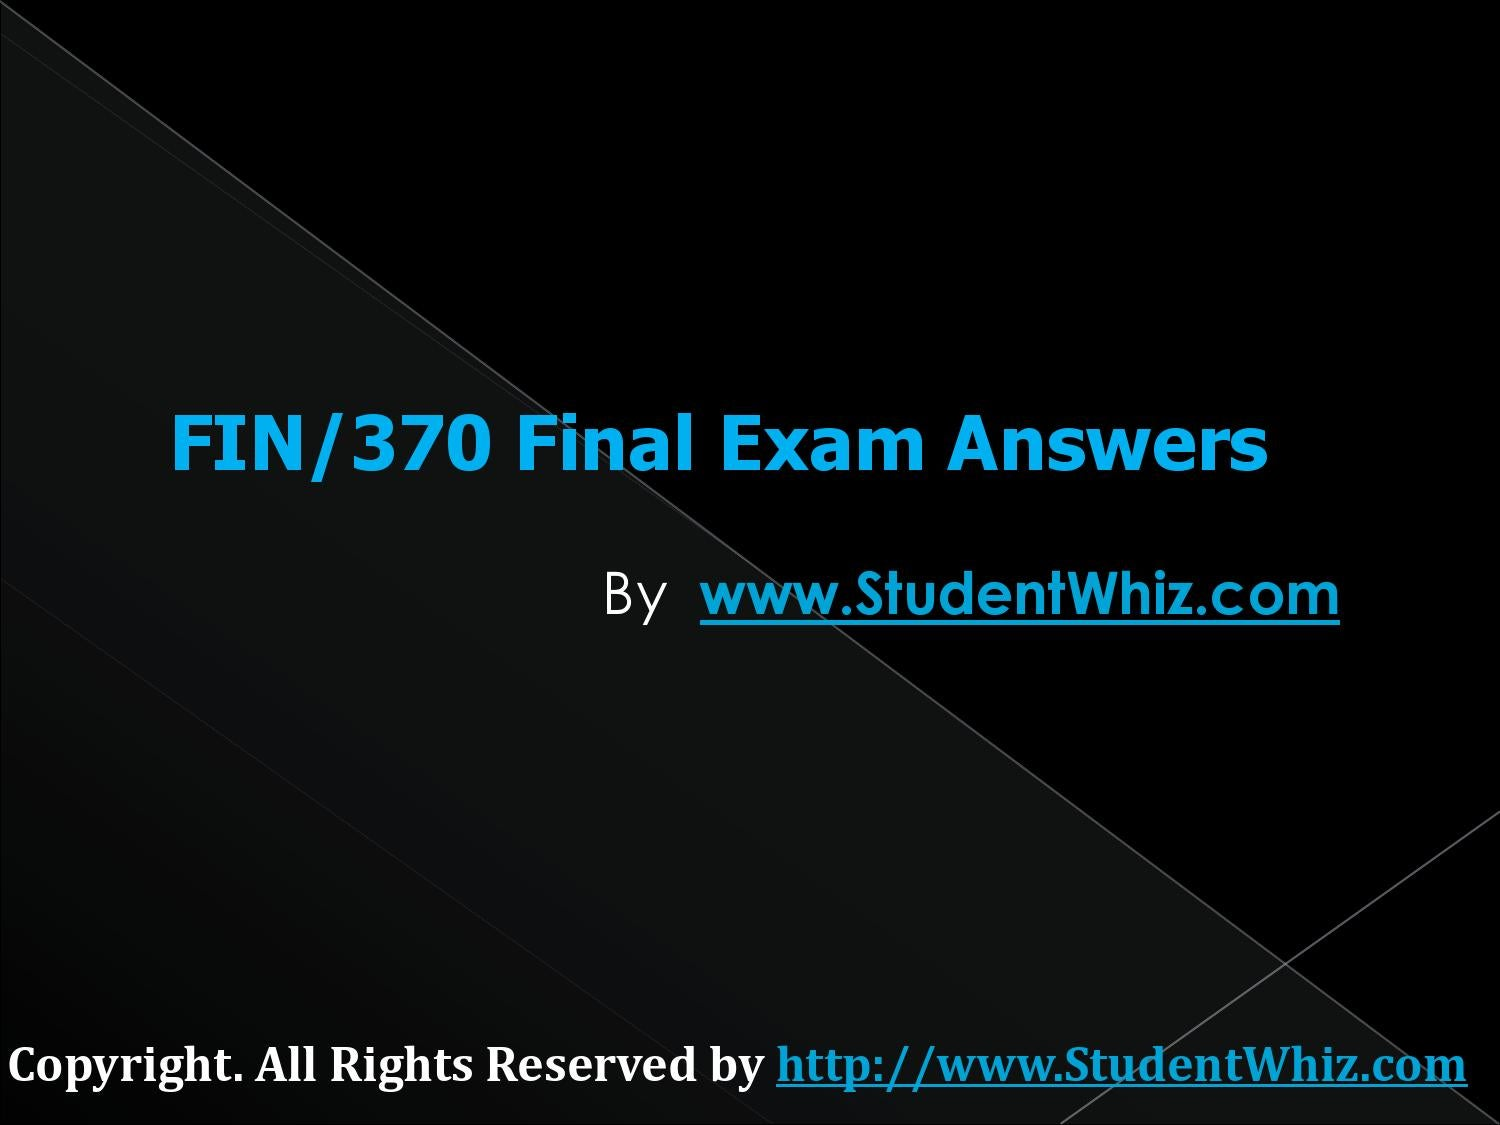 fin 370 final exam v4 Transweb e tutors is the only educational store who provides the fin 370 final exam, fin 370 final exam answers uop and fin 370 final exam 2013.